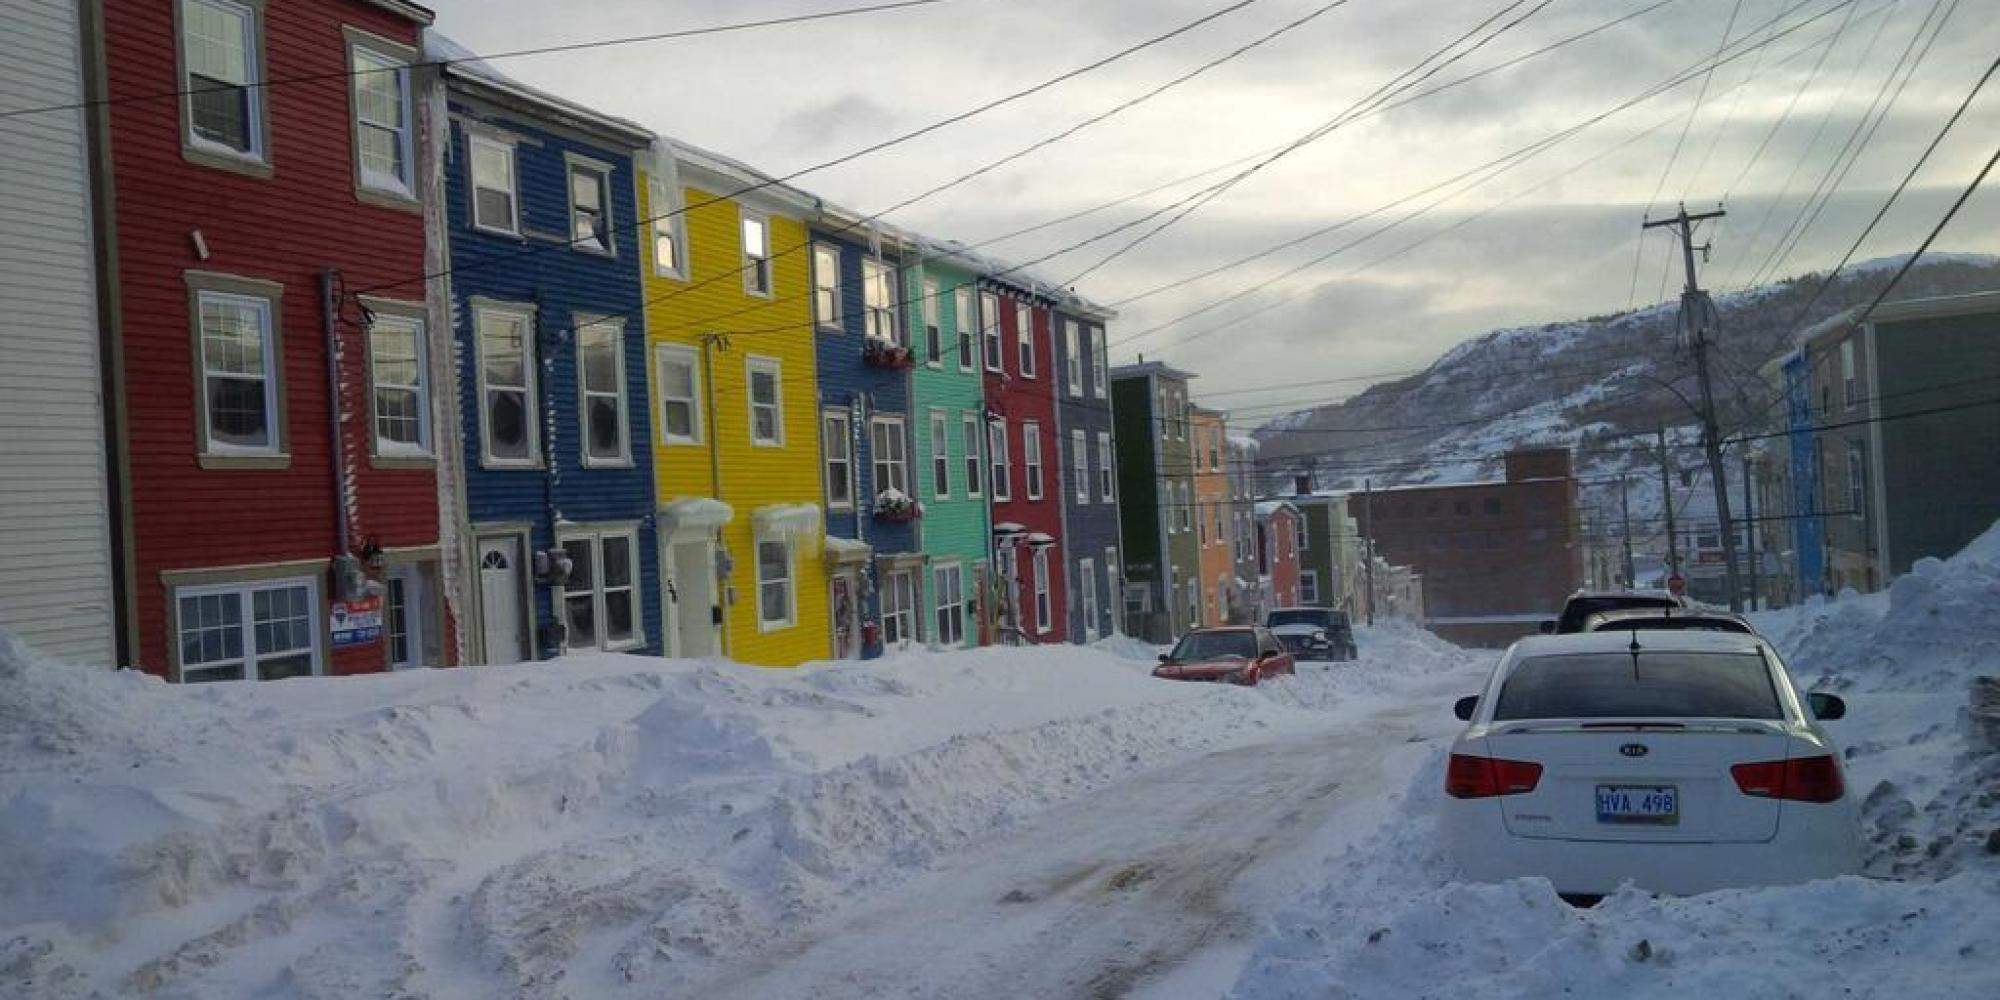 storm wallops newfoundland power outages across island. Black Bedroom Furniture Sets. Home Design Ideas